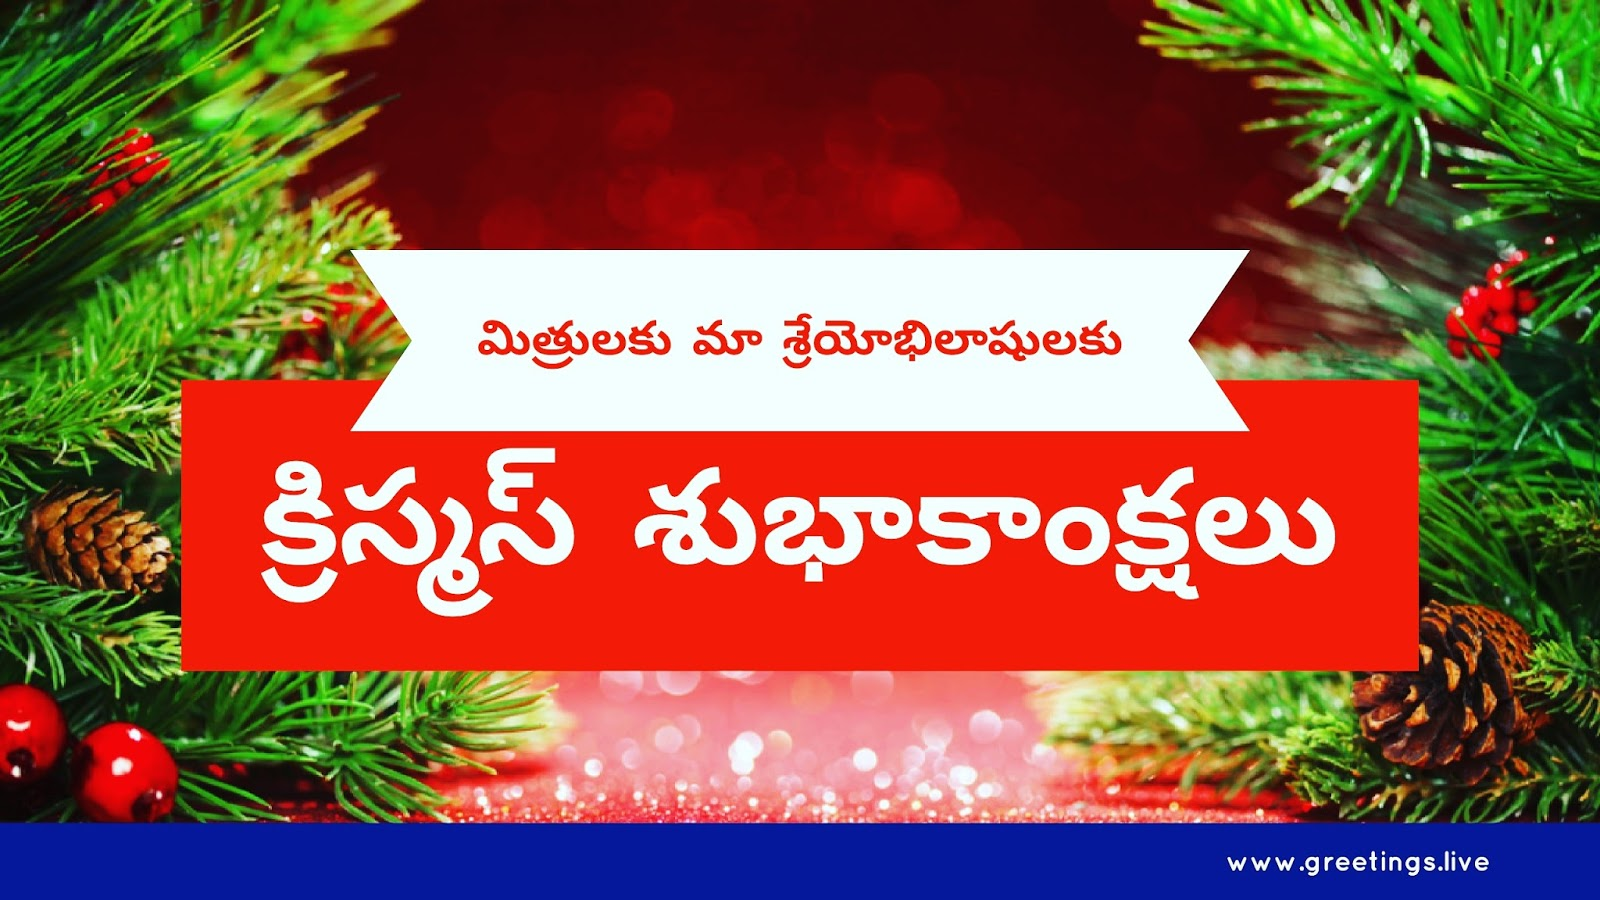 Greetingsve hd images love smile birthday wishes free download merry christmas wishes in telugu english language kristyandbryce Gallery